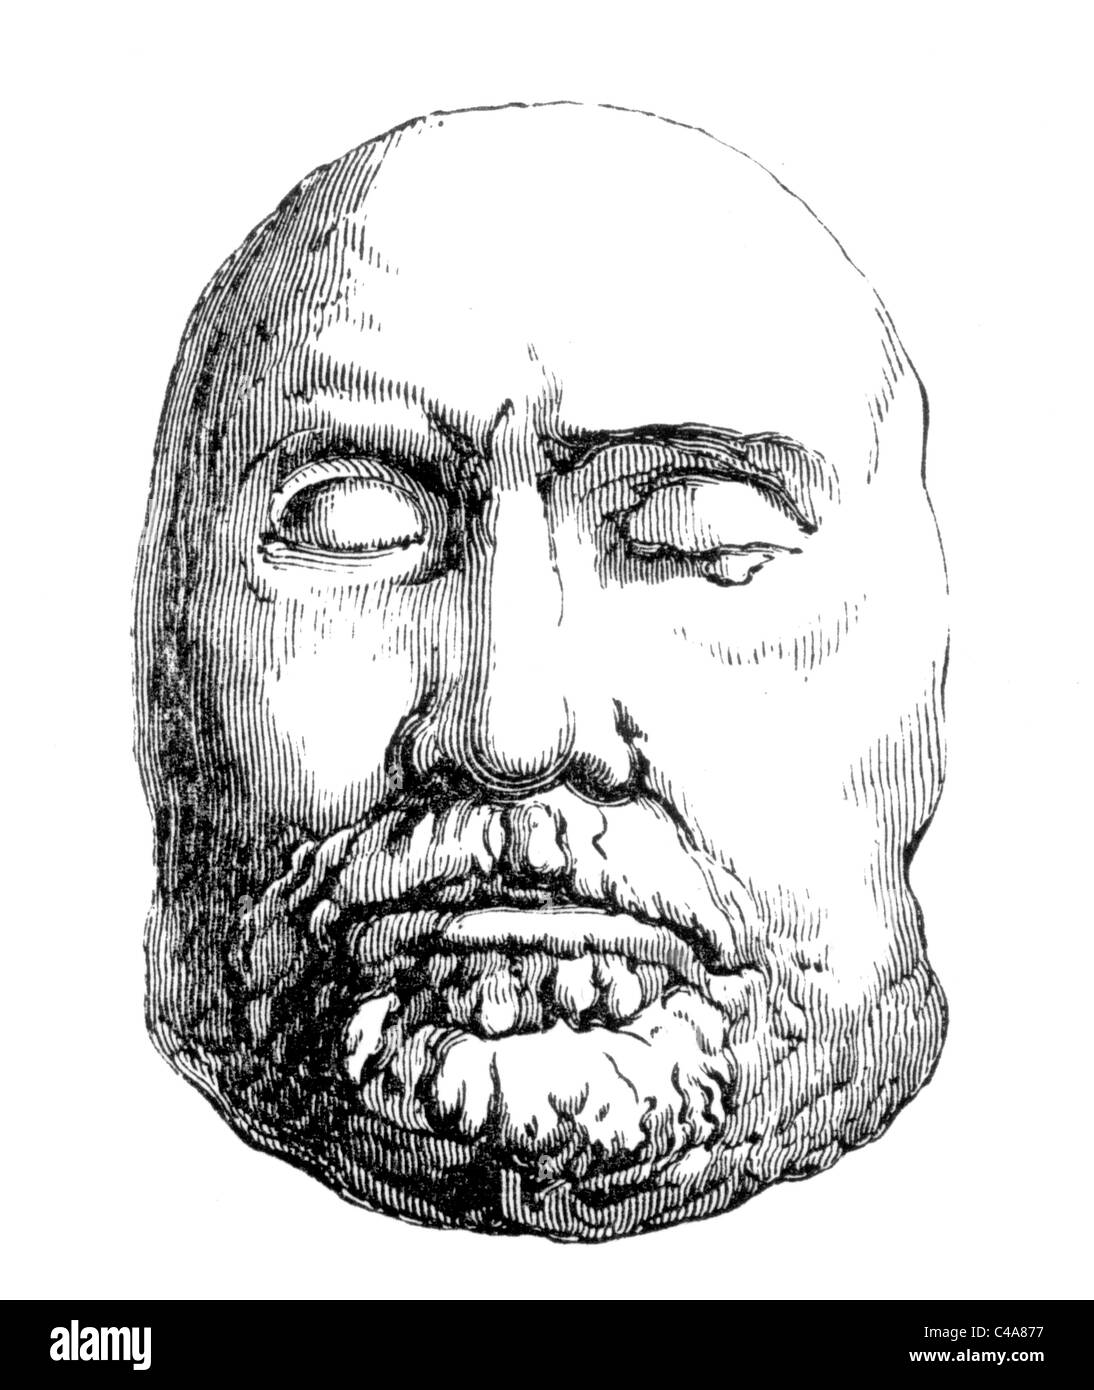 The Death Mask of Oliver Cromwell 1658; Black and White Illustration; - Stock Image